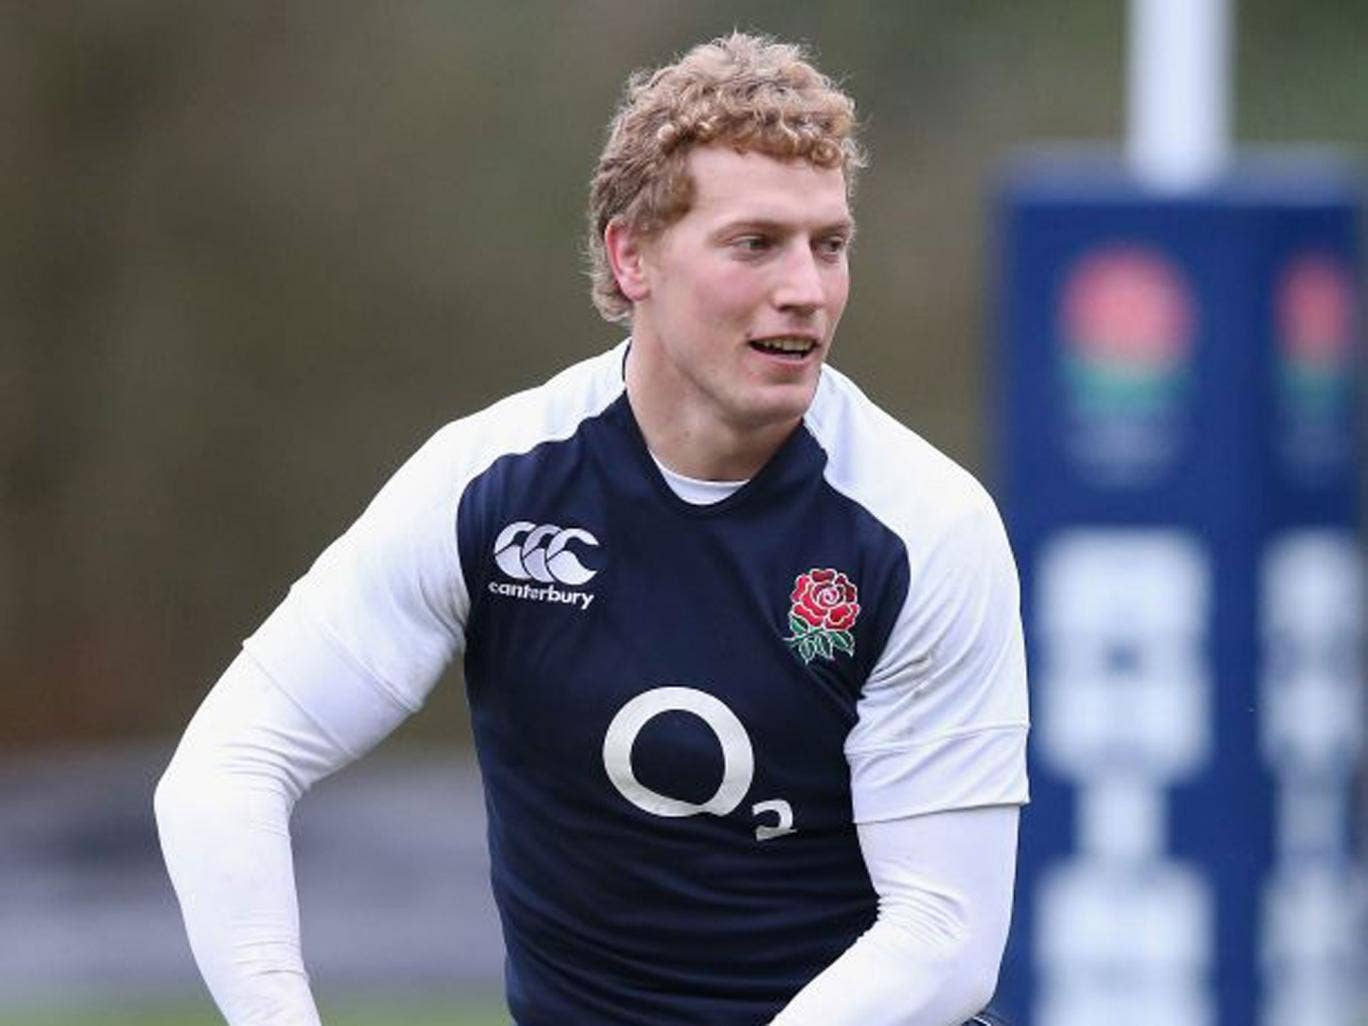 Billy Twelvetrees has all you want to see in a big No 12